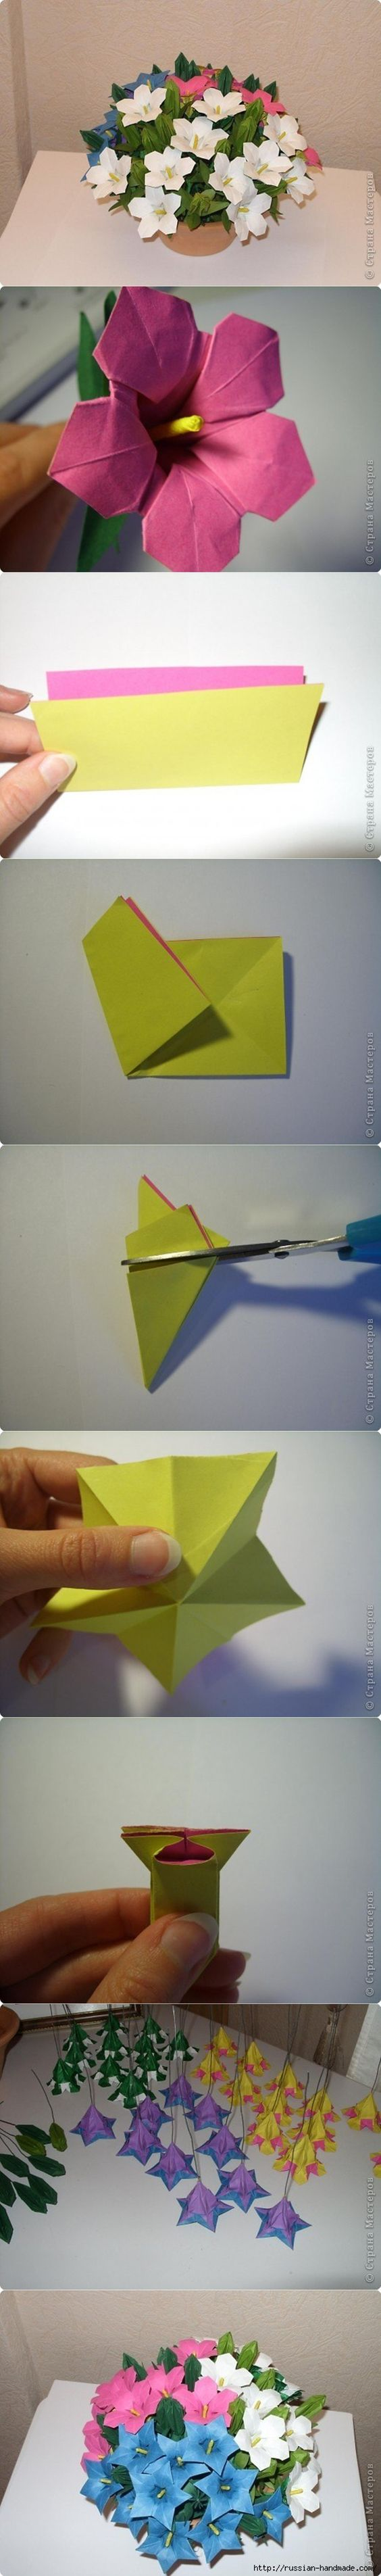 How To Make Paper Flowers Using Origami The Art Of Paper Folding Fun